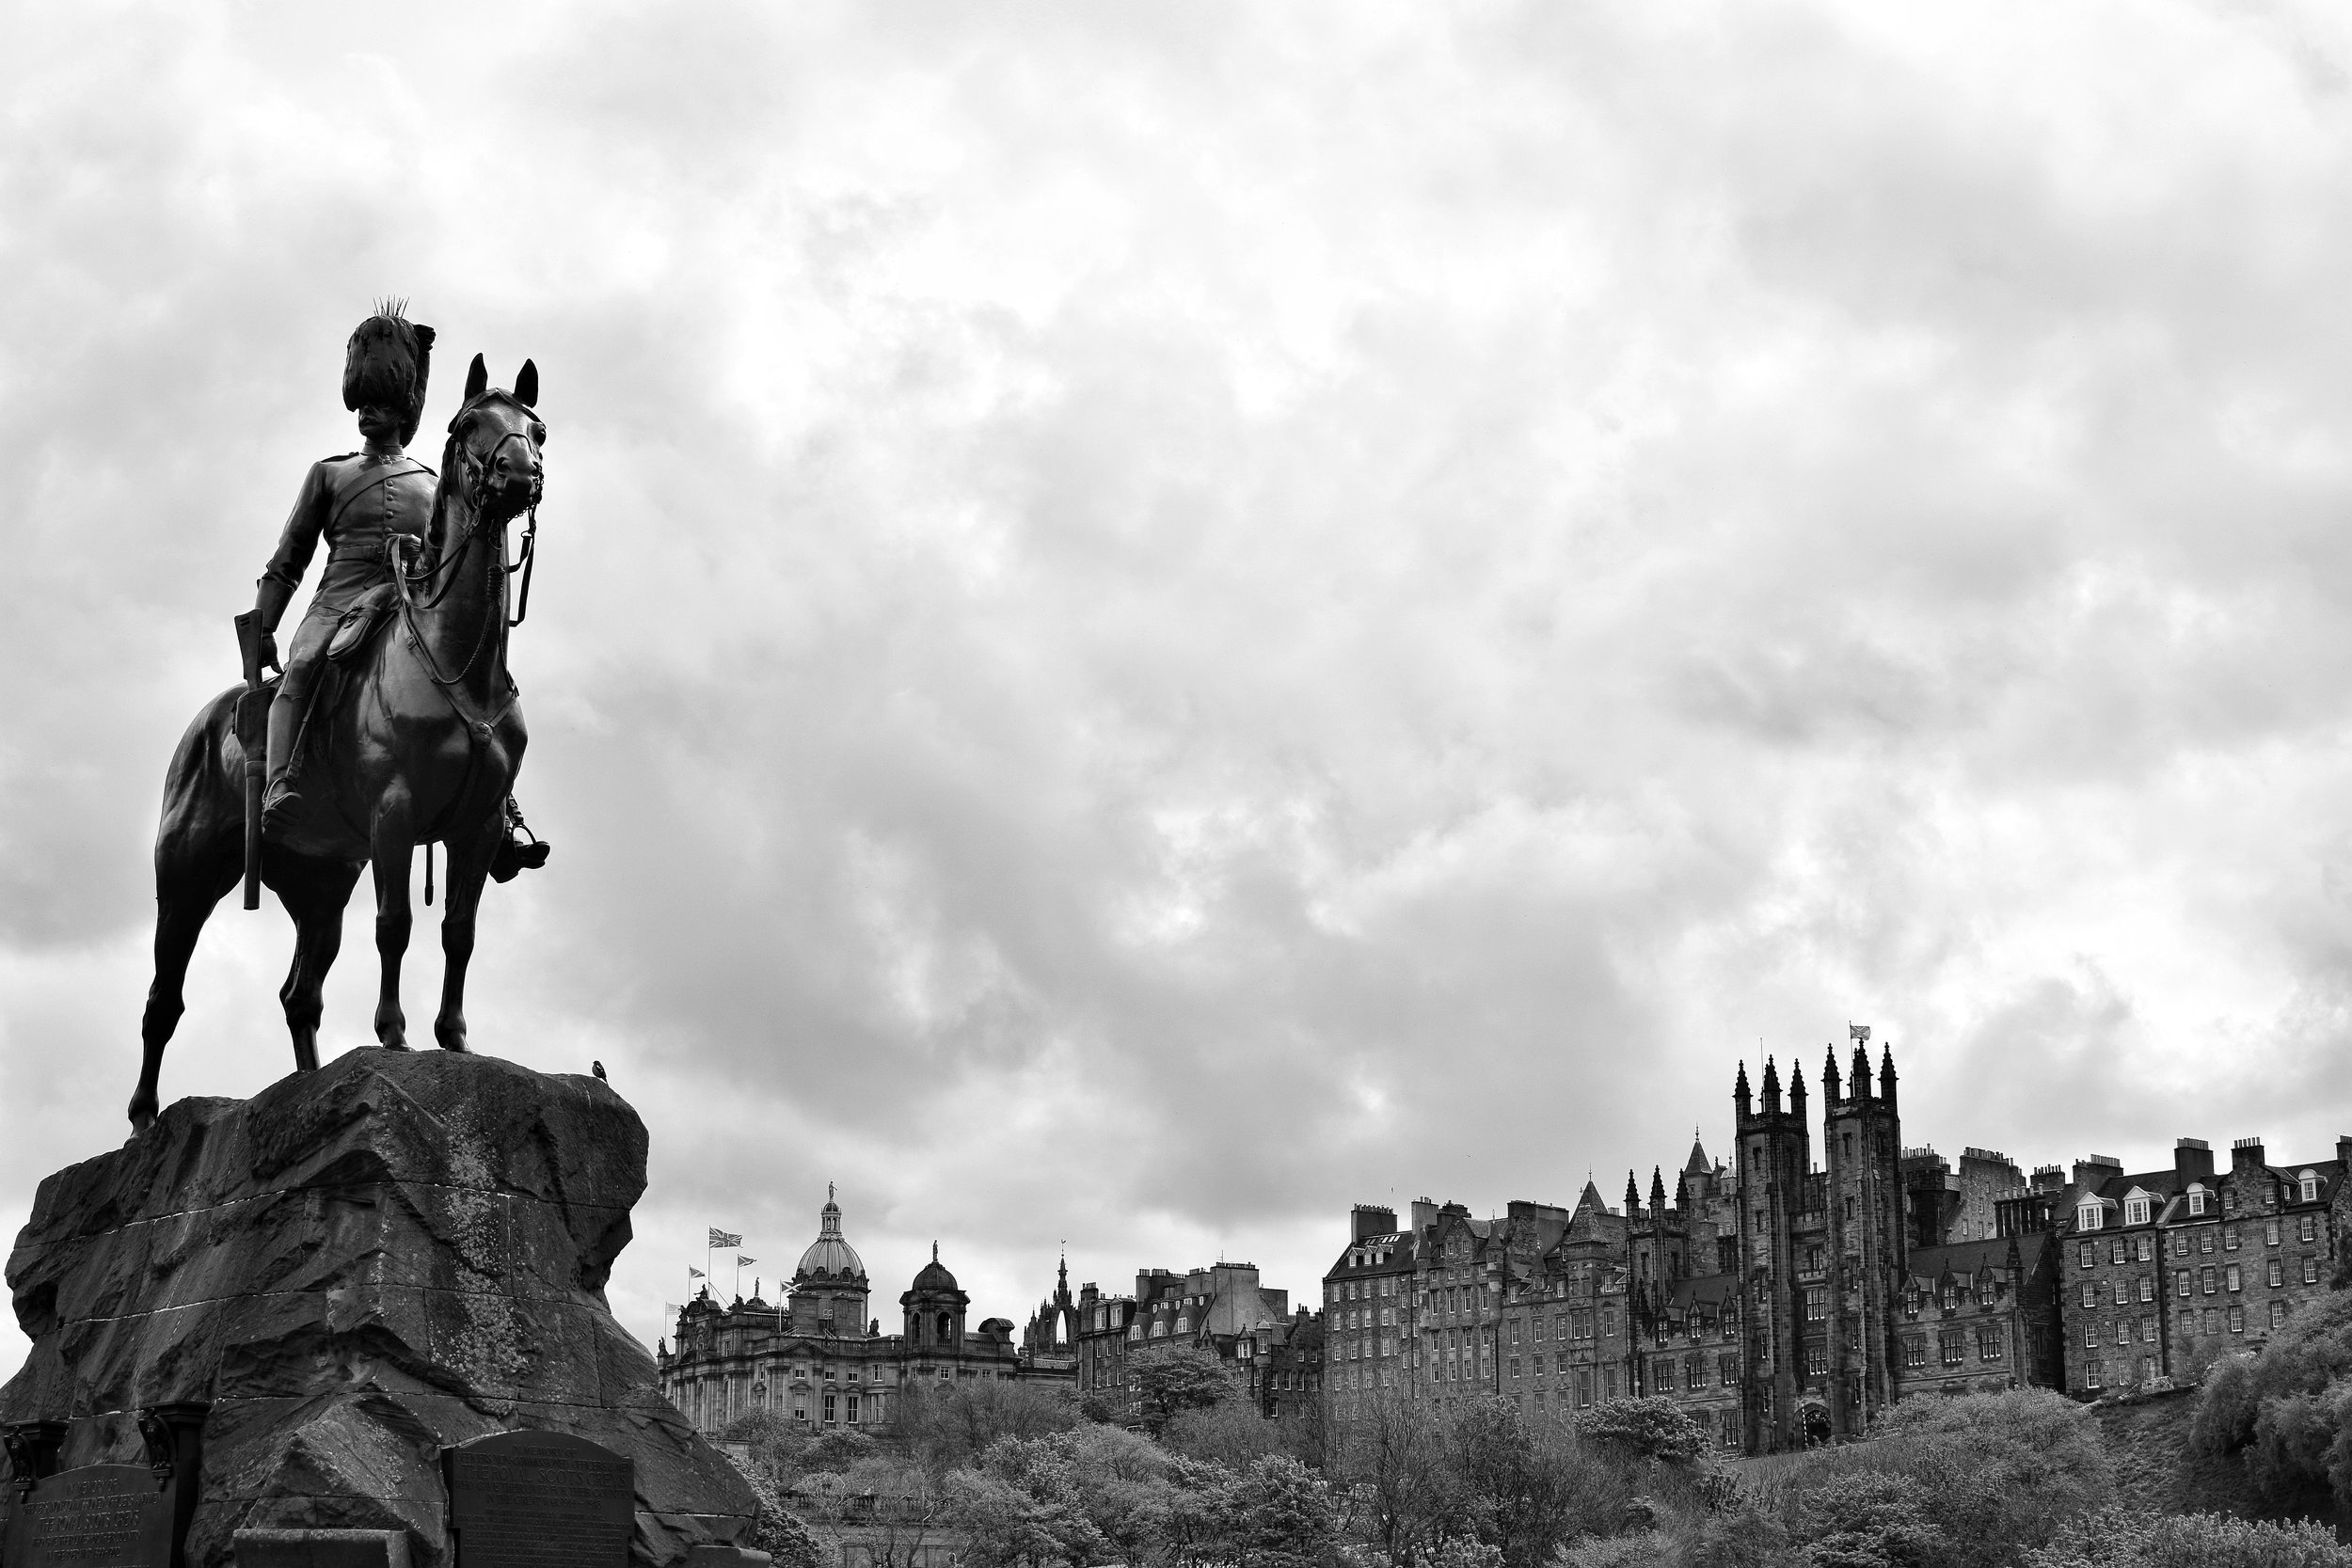 The Royal Scots Greys Monument overlooking Old Town (Princes Street Gardens, Edinburgh, Scotland)